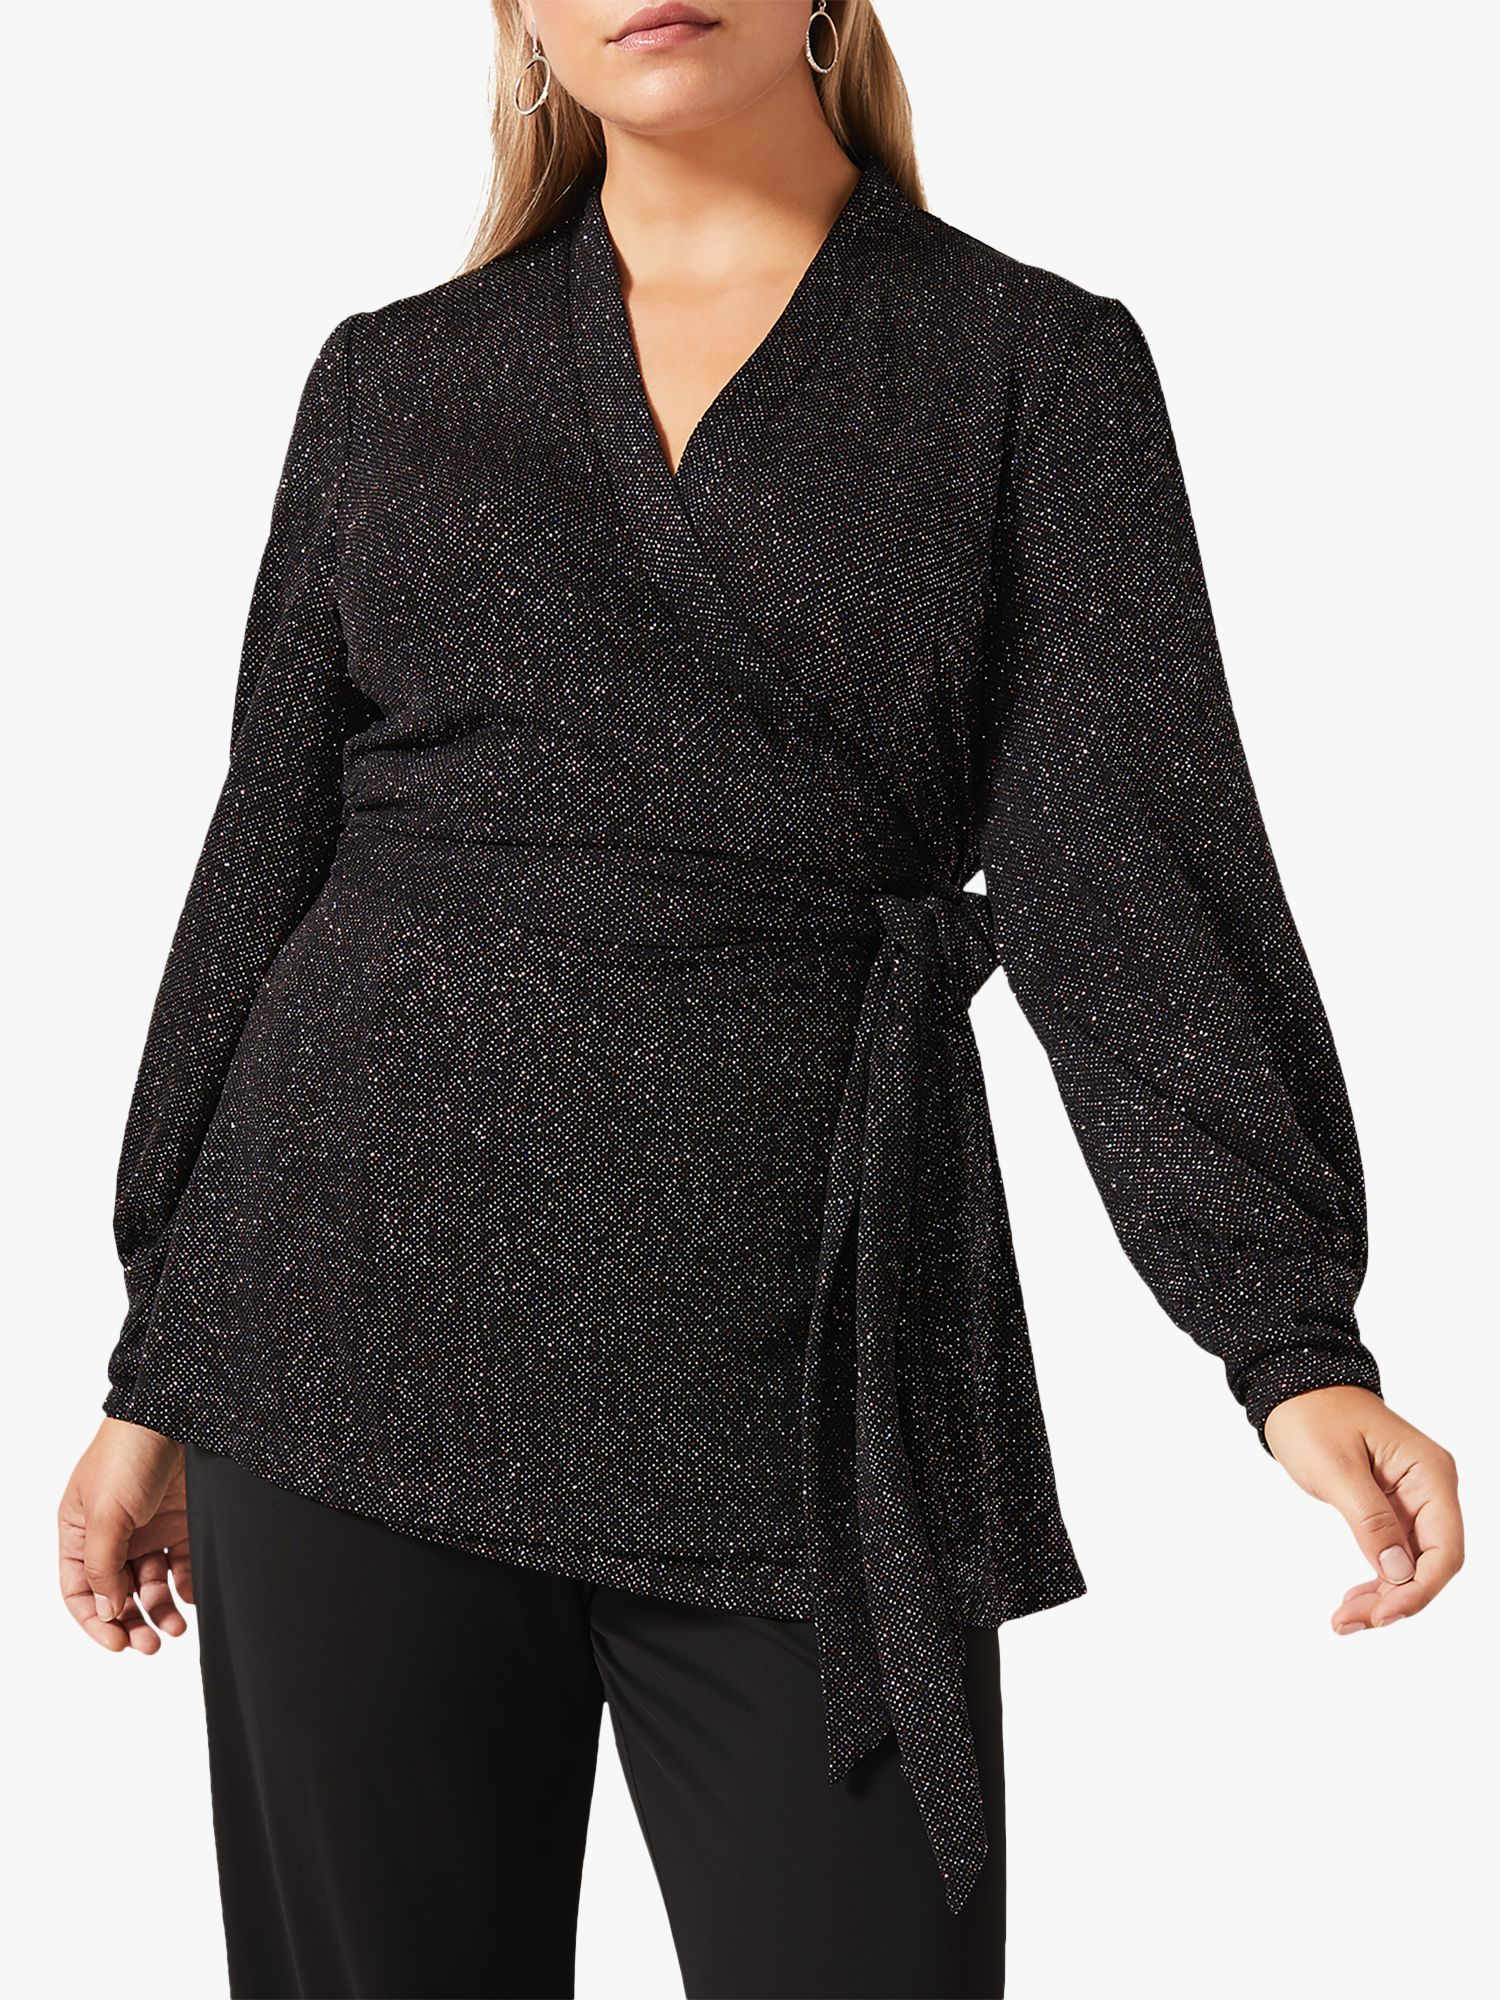 Studio 8 Studio 8 Denver Sparkle Wrap Top, Black